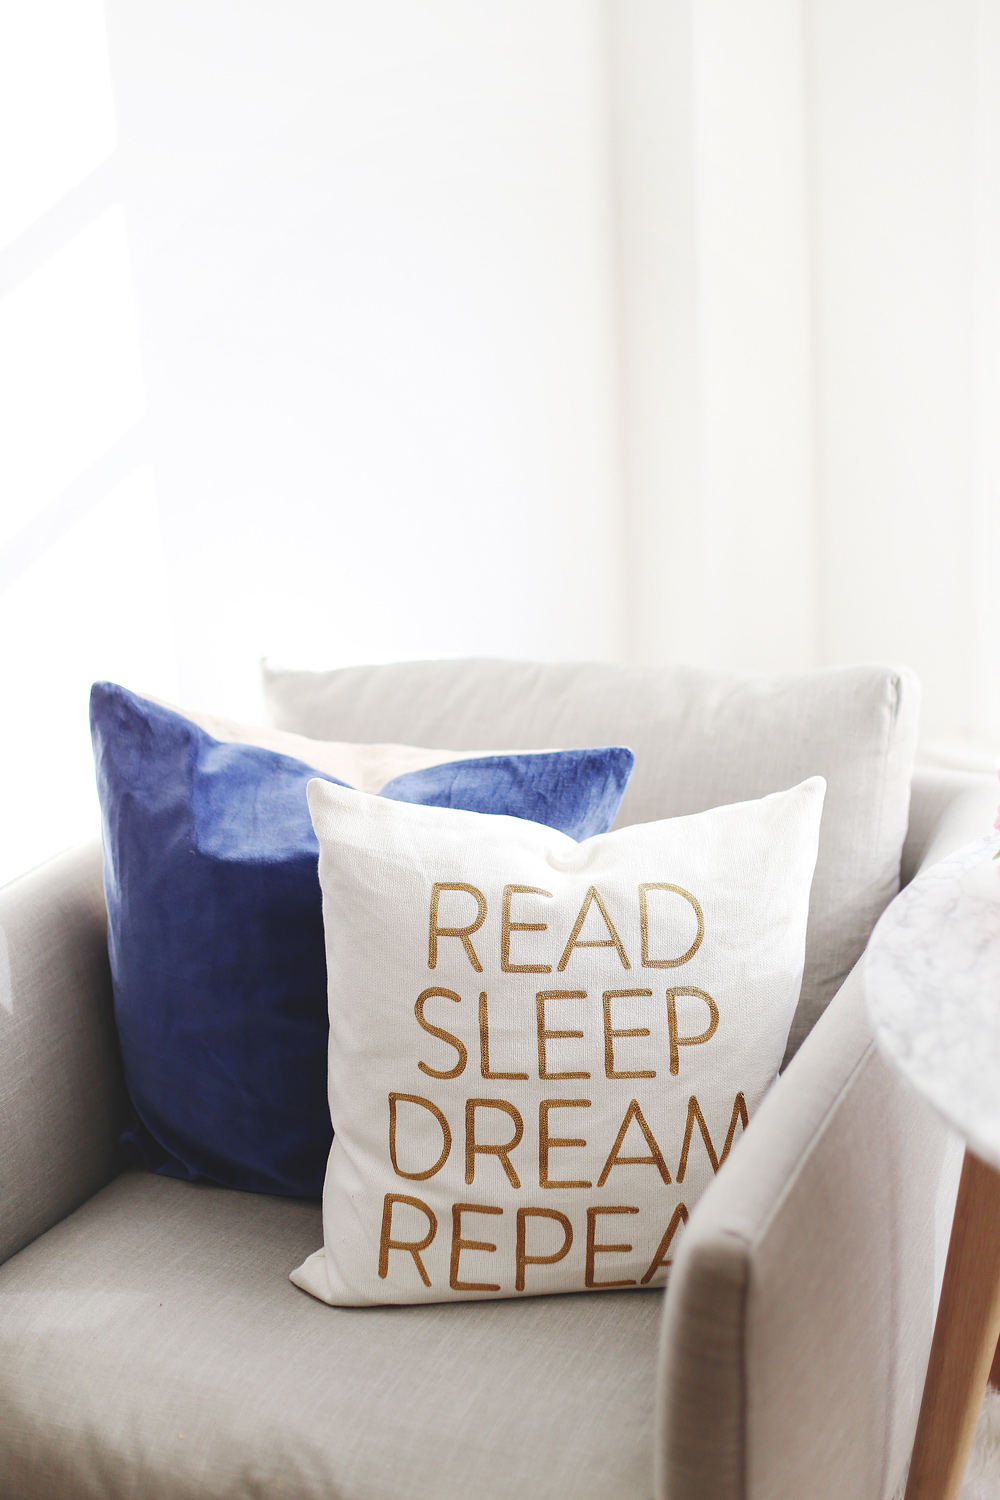 To Vogue or Bust shares how to start a book club in an airy minimalist studio space featuring Chapters books, Chapters decor, Chapters pillows